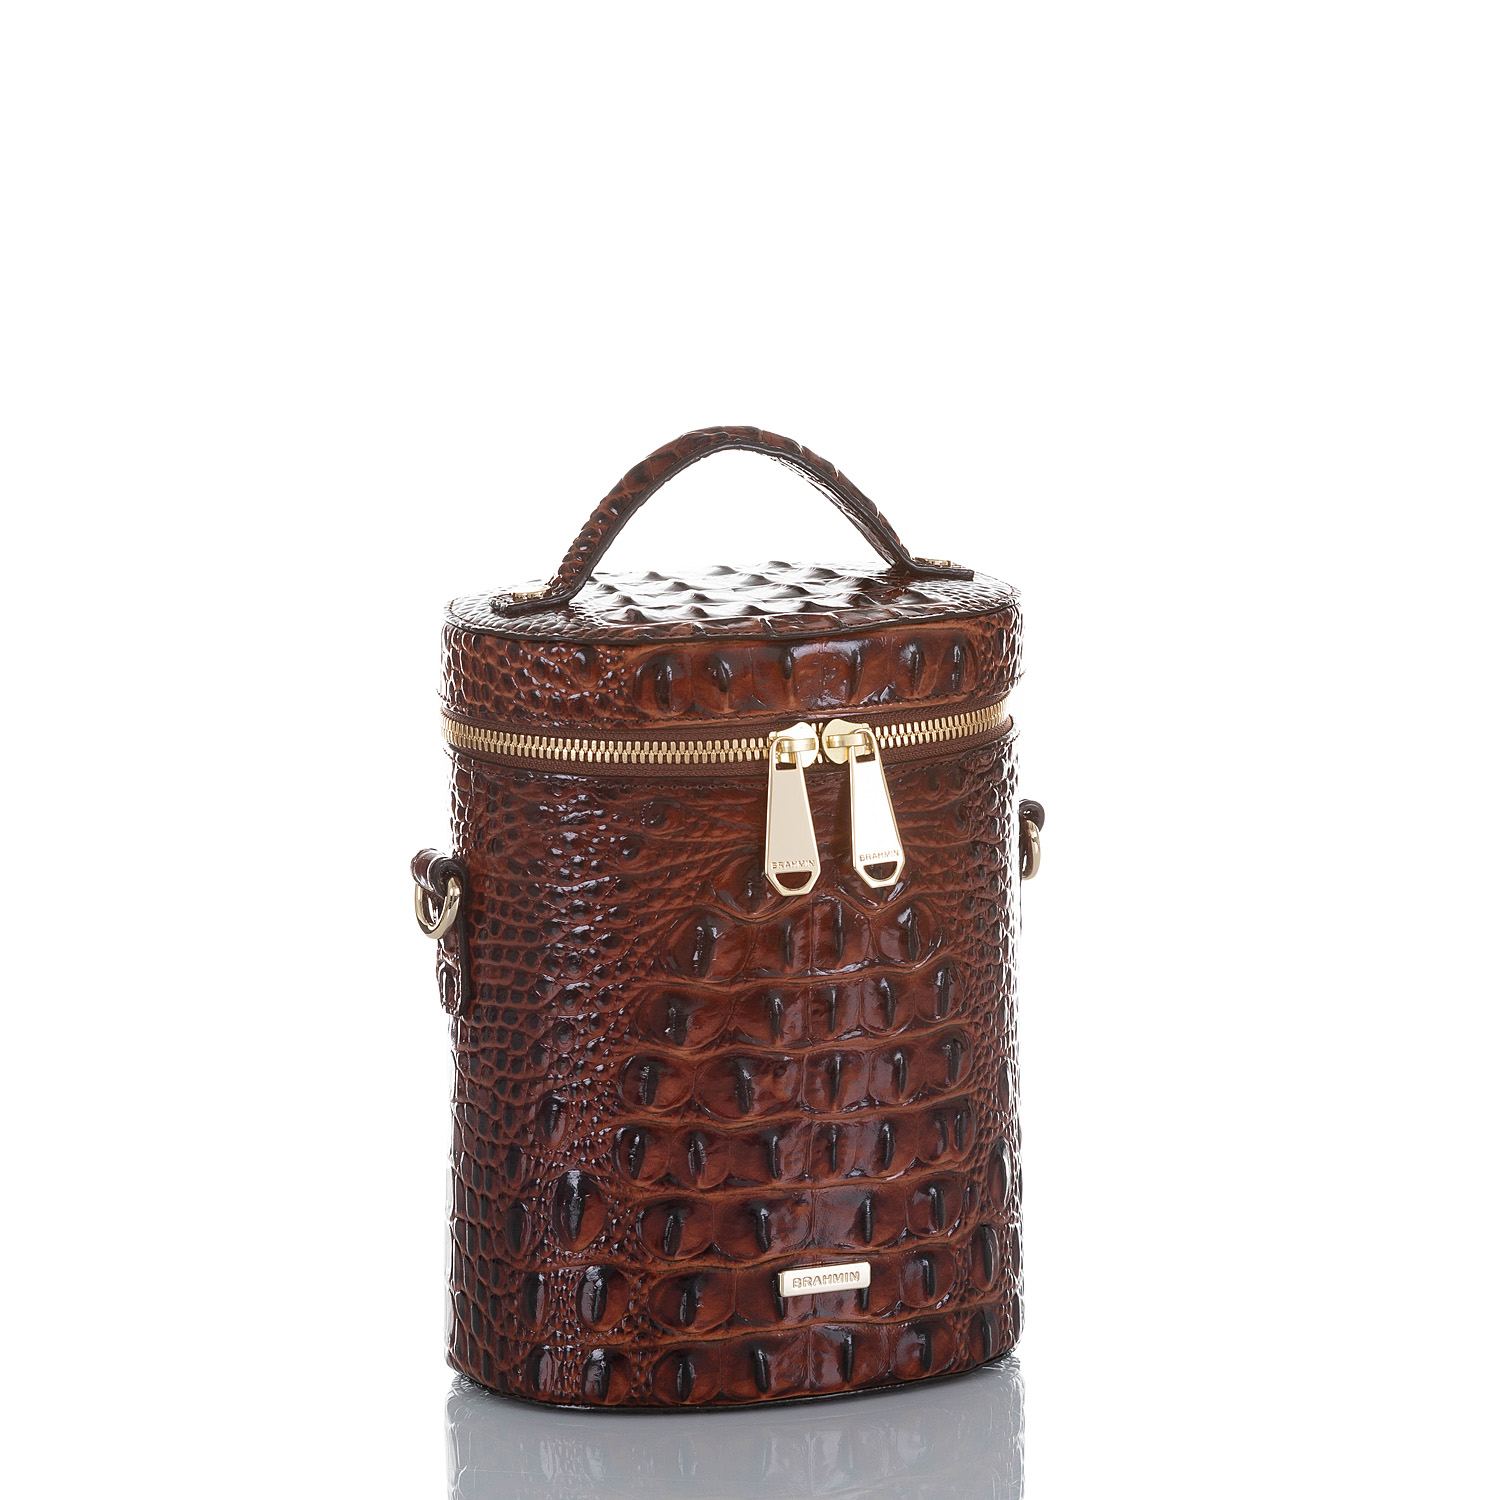 Brynn Barrel Bag Pecan Melbourne Front